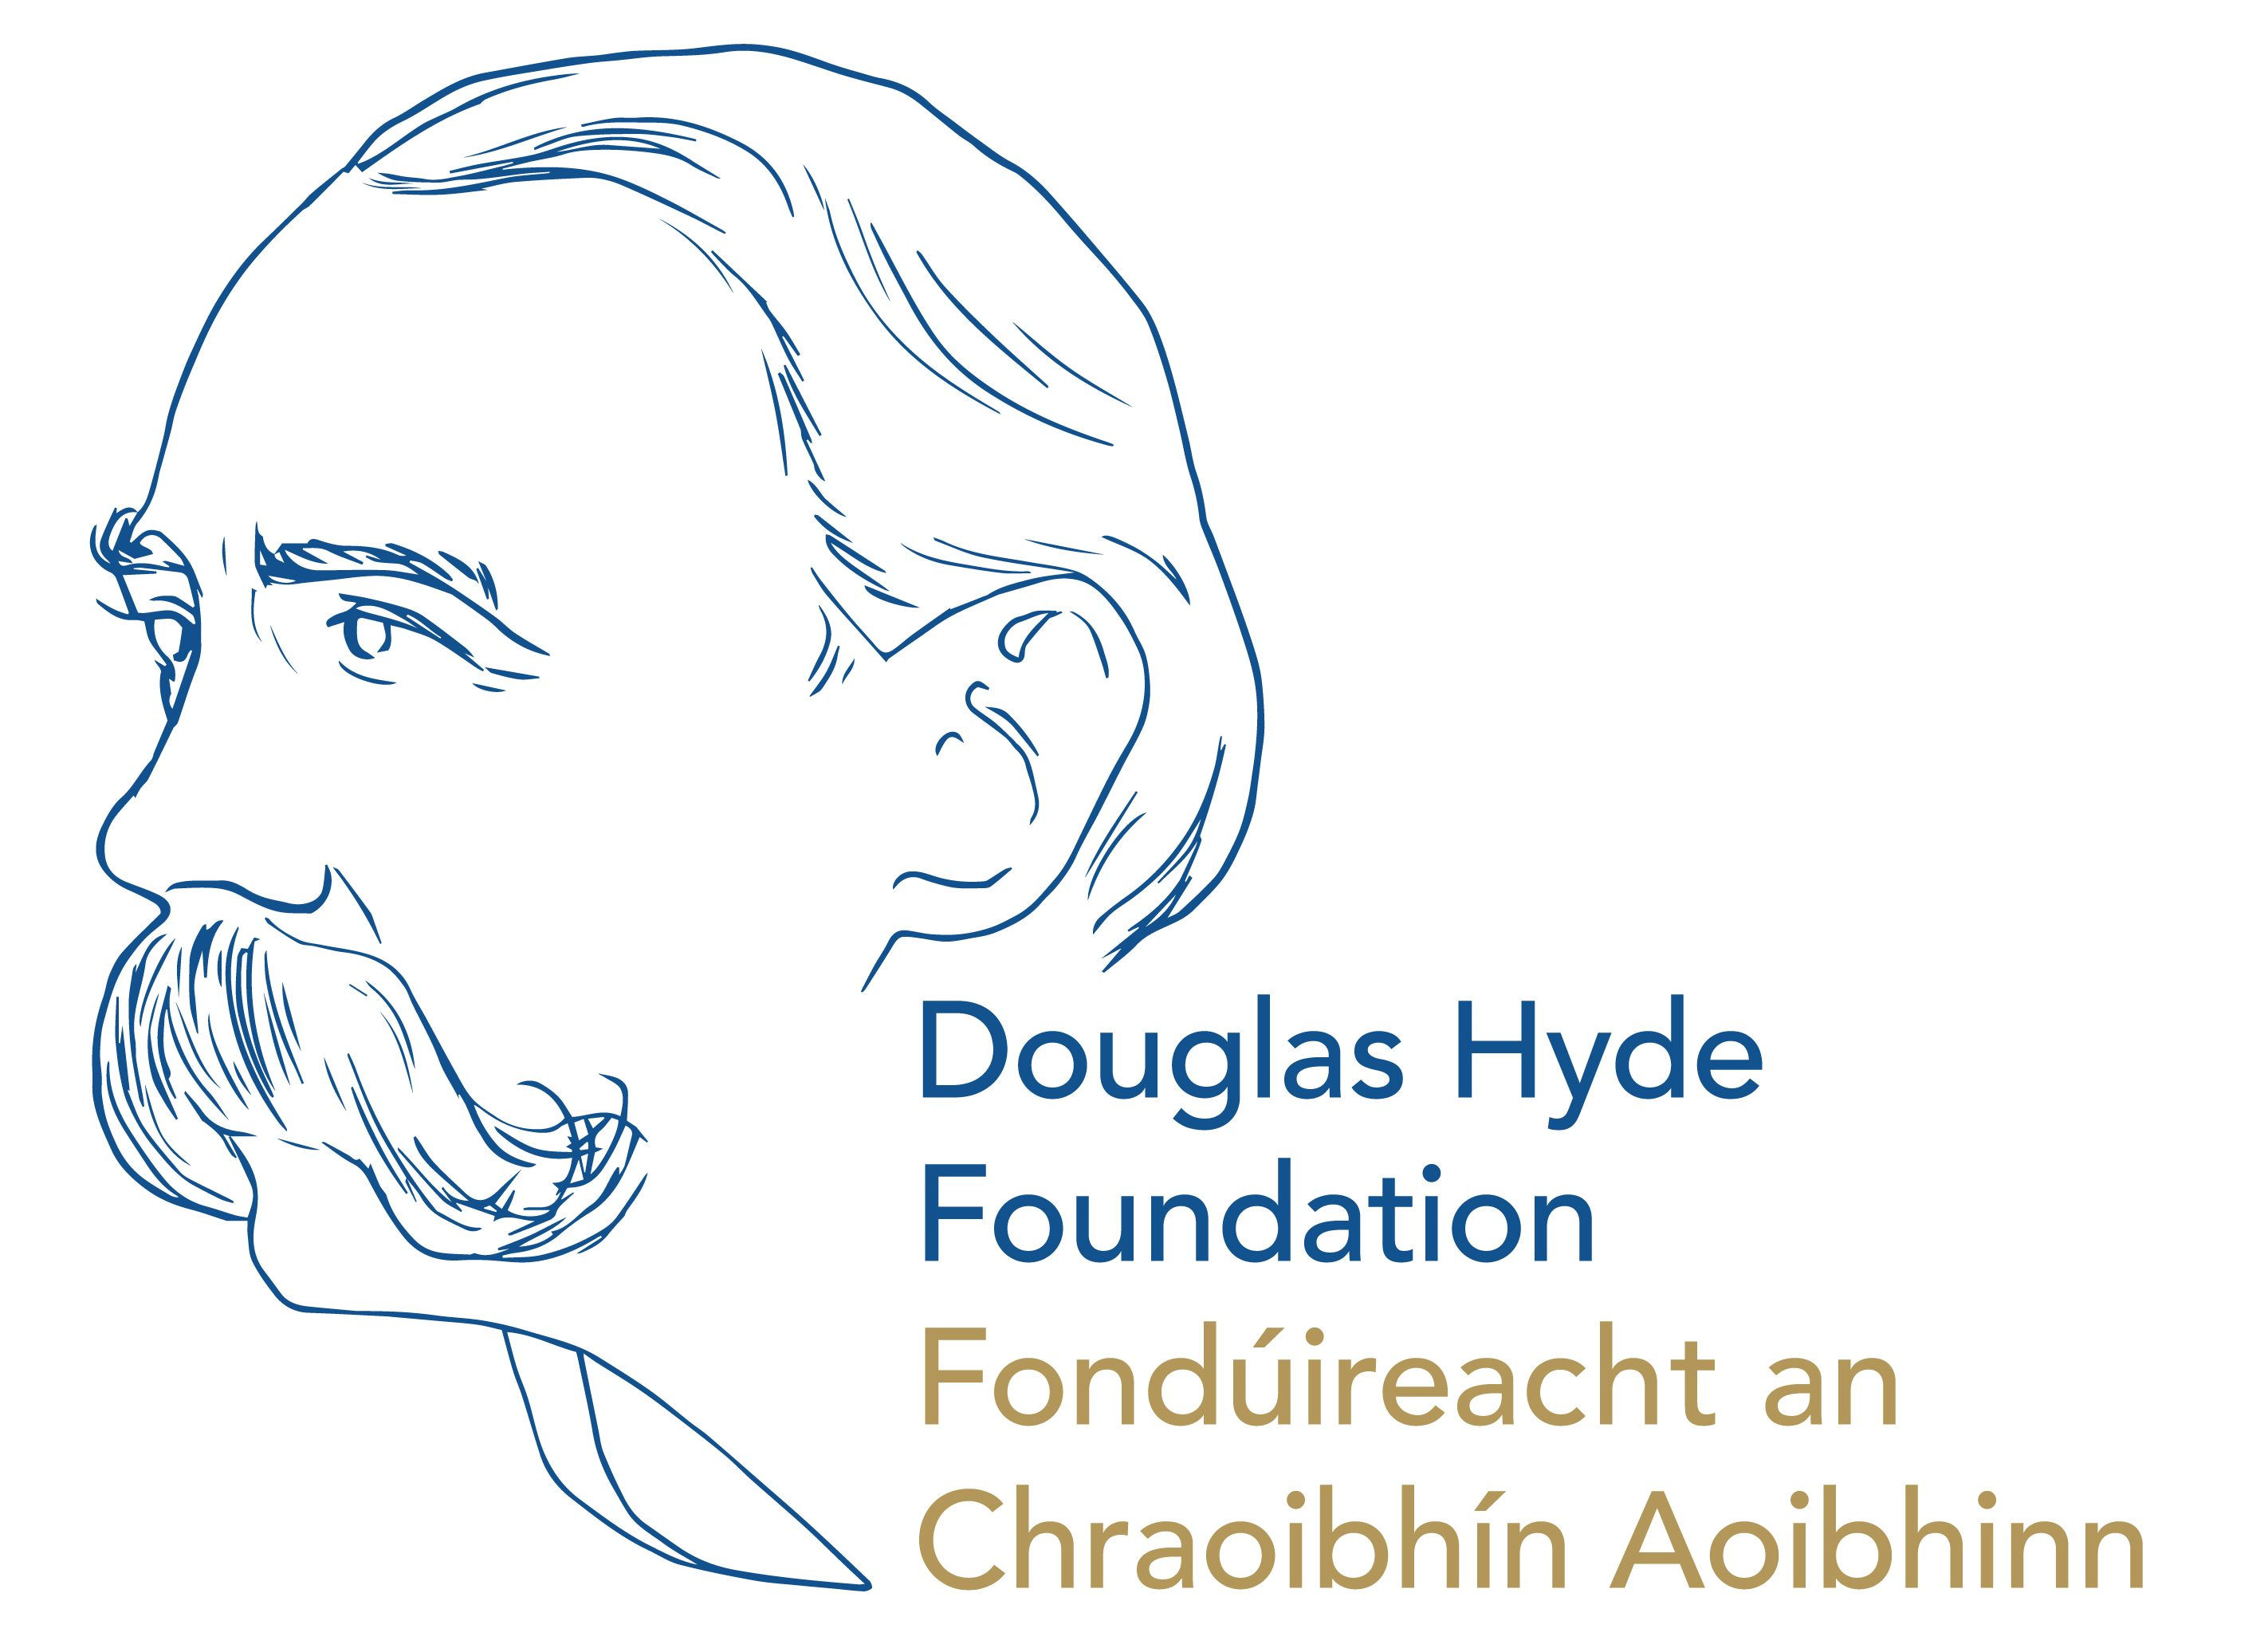 The Douglas Hyde Foundation